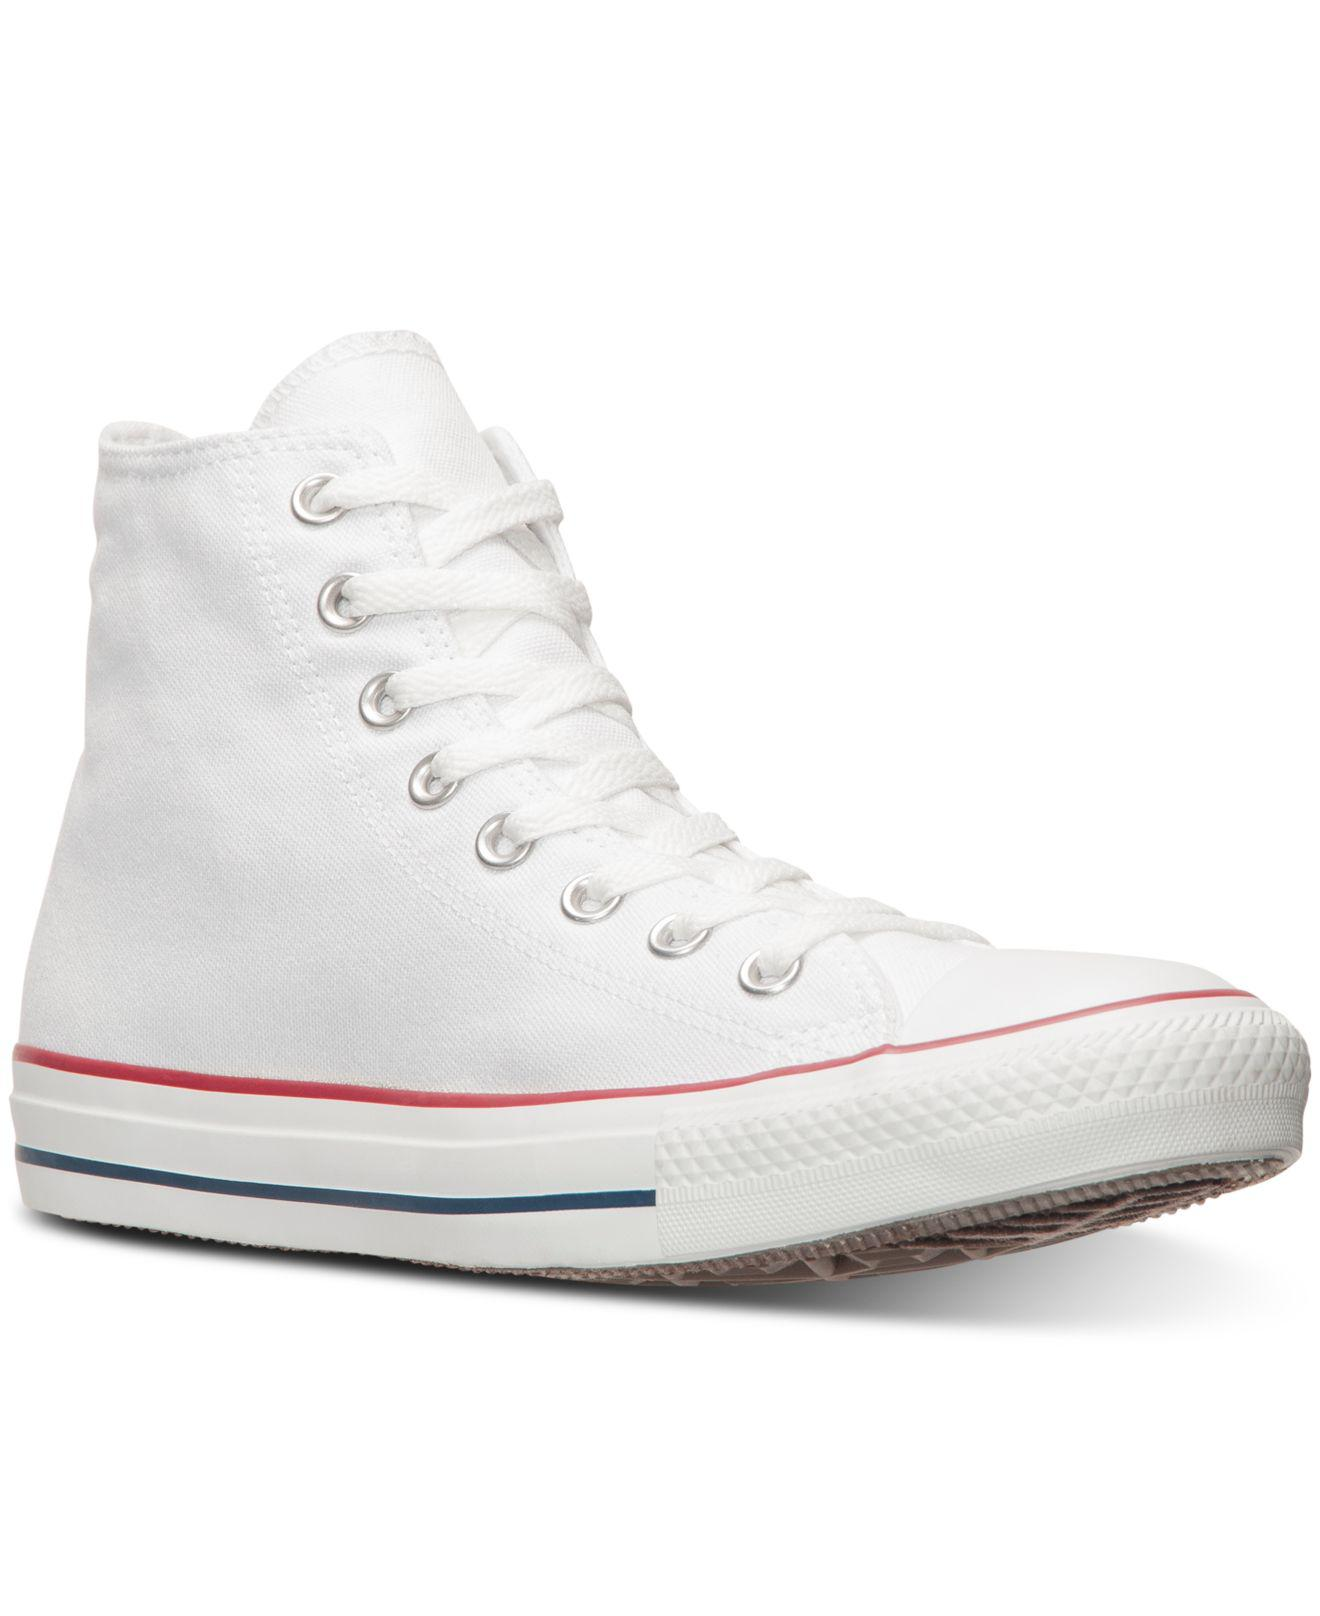 ... real converse. white mens chuck taylor all star canvas high top sneakers  a4361 7c465 2714b5465